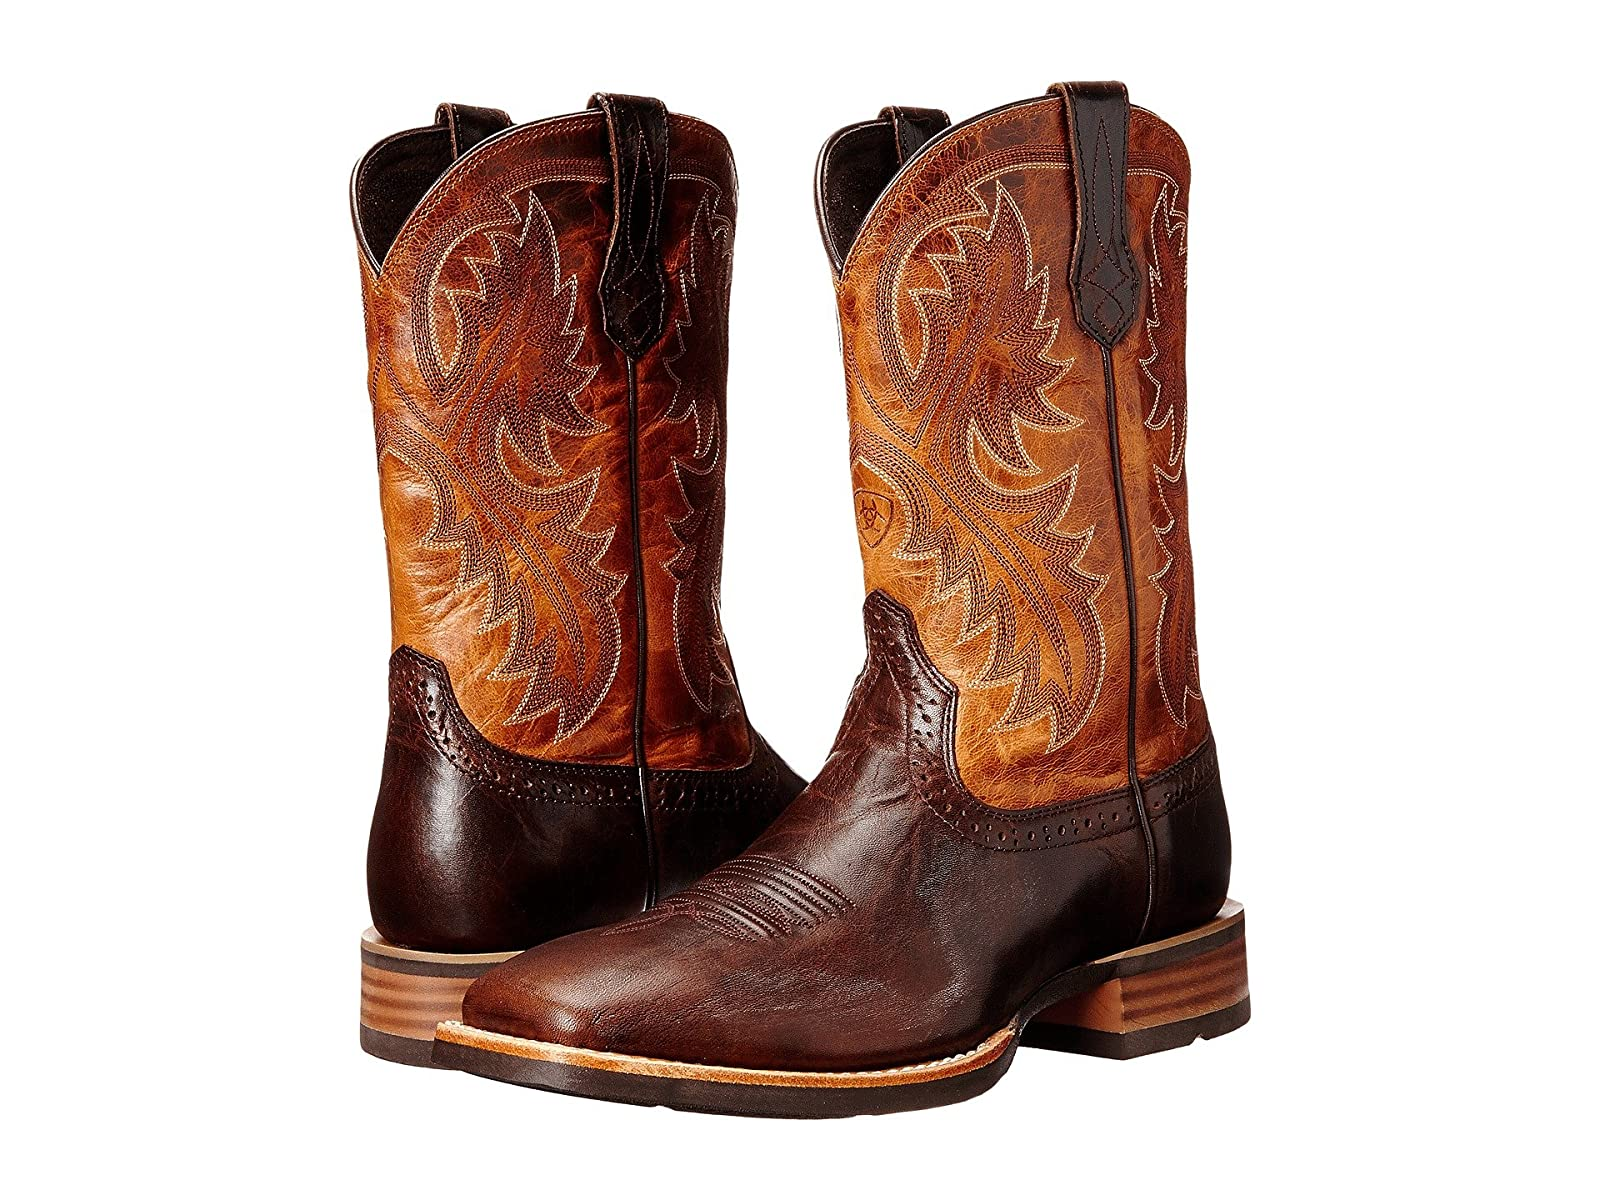 Ariat QuickDrawSelling fashionable and eye-catching shoes